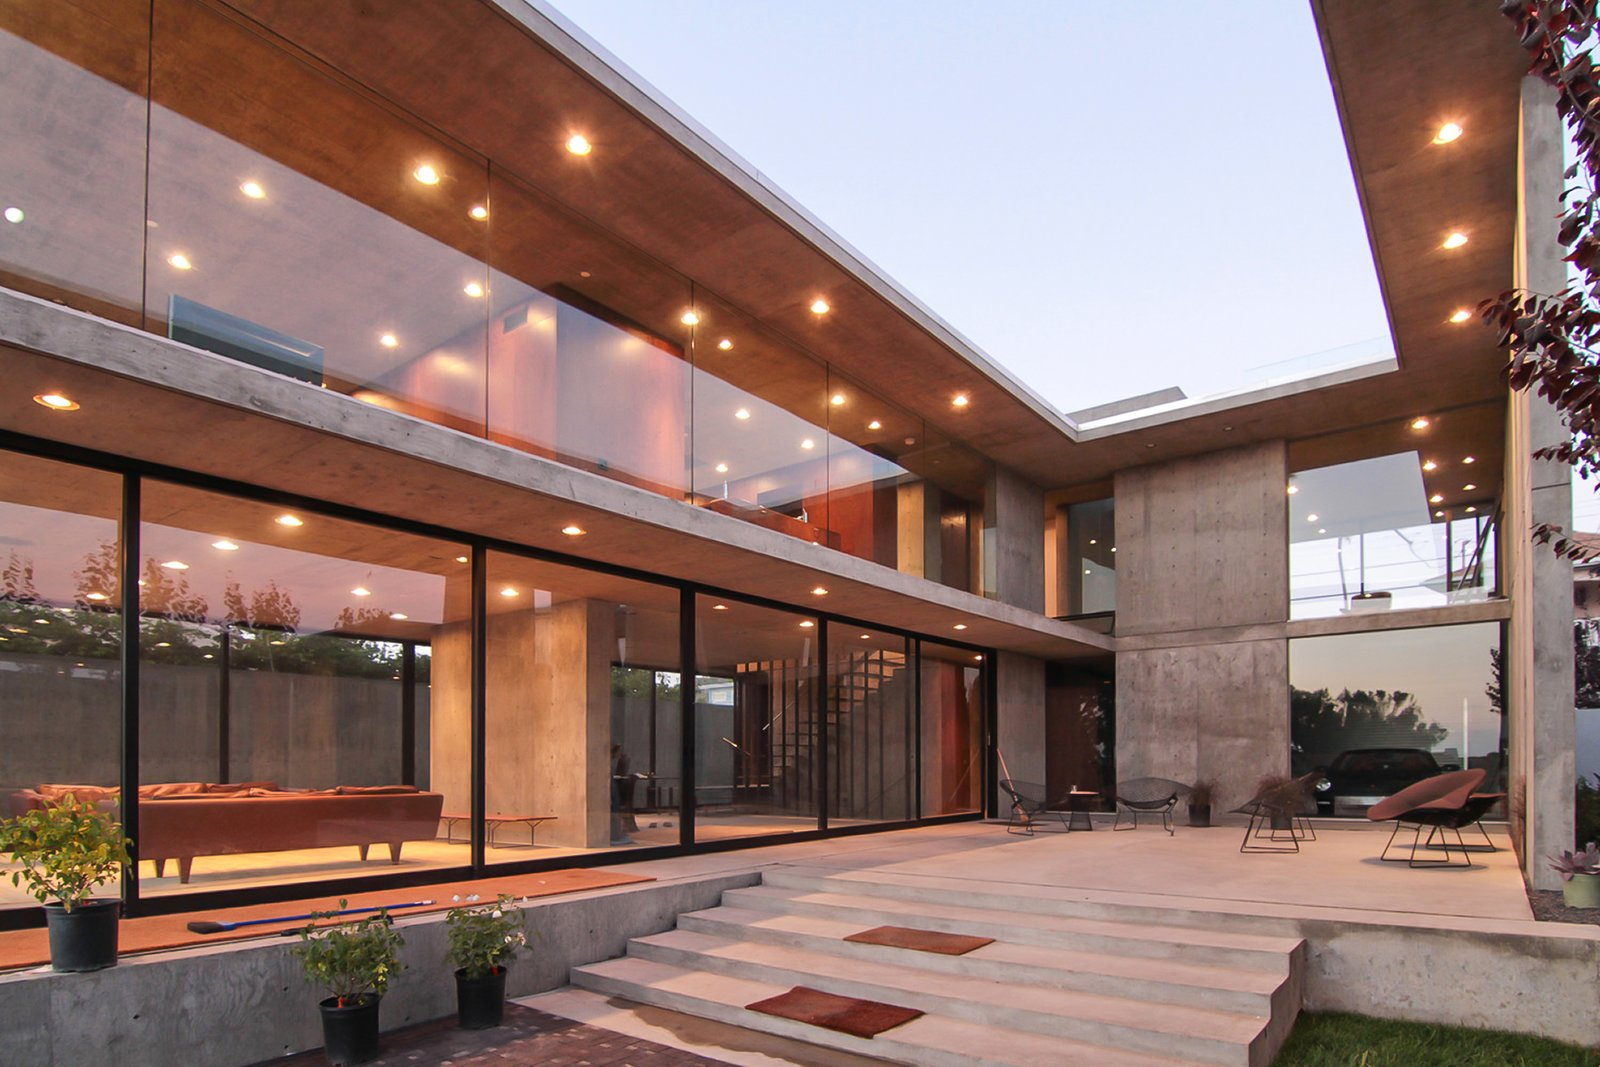 Several factors allow the house to depend nearly wholly on the solar array on the roof for power: windows that completely open for cross ventilation, the thermal mass of concrete, sun shading, and the pool's insulating effect. This Architect's Home Embraces Oceanfront Views - Photo 4 of 8